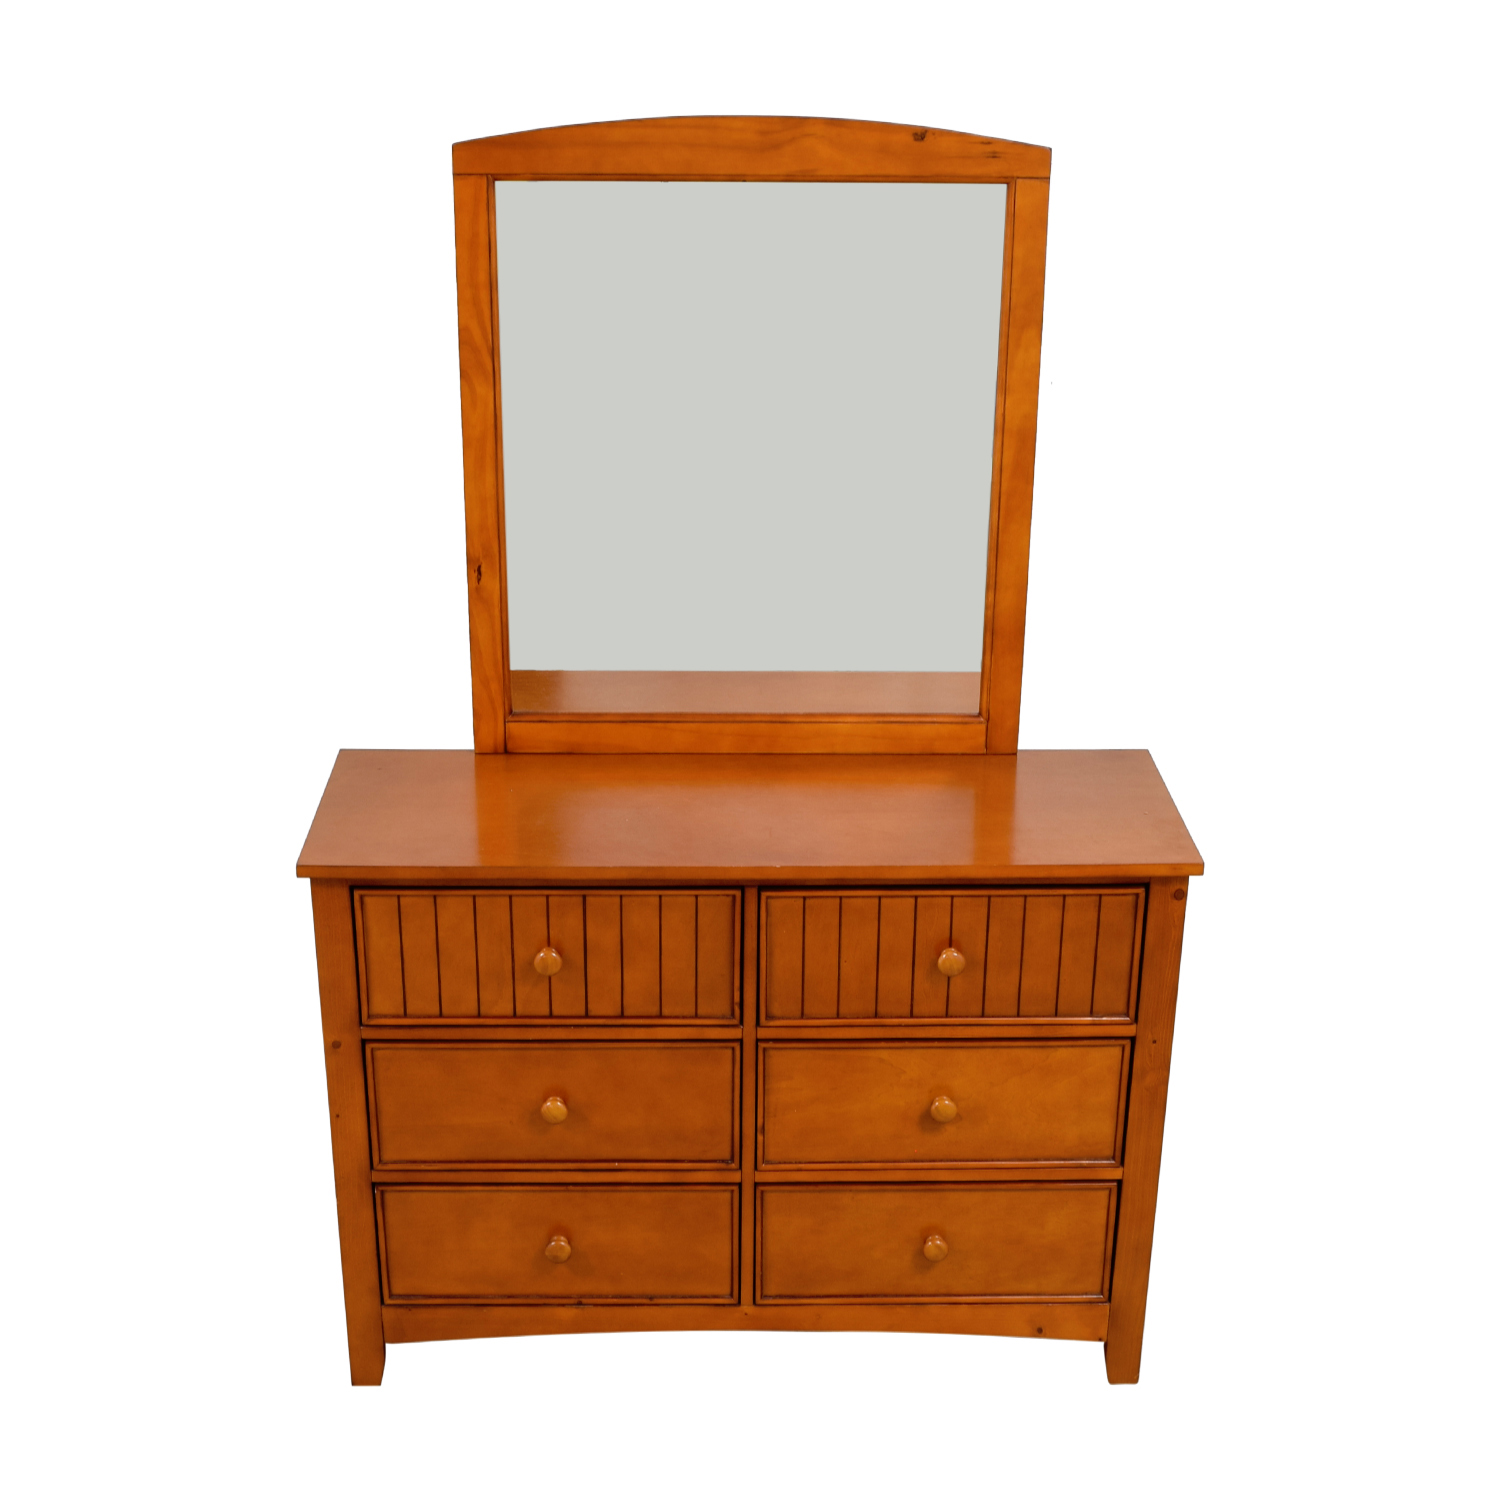 Classic Wooden Dresser with Mirror price